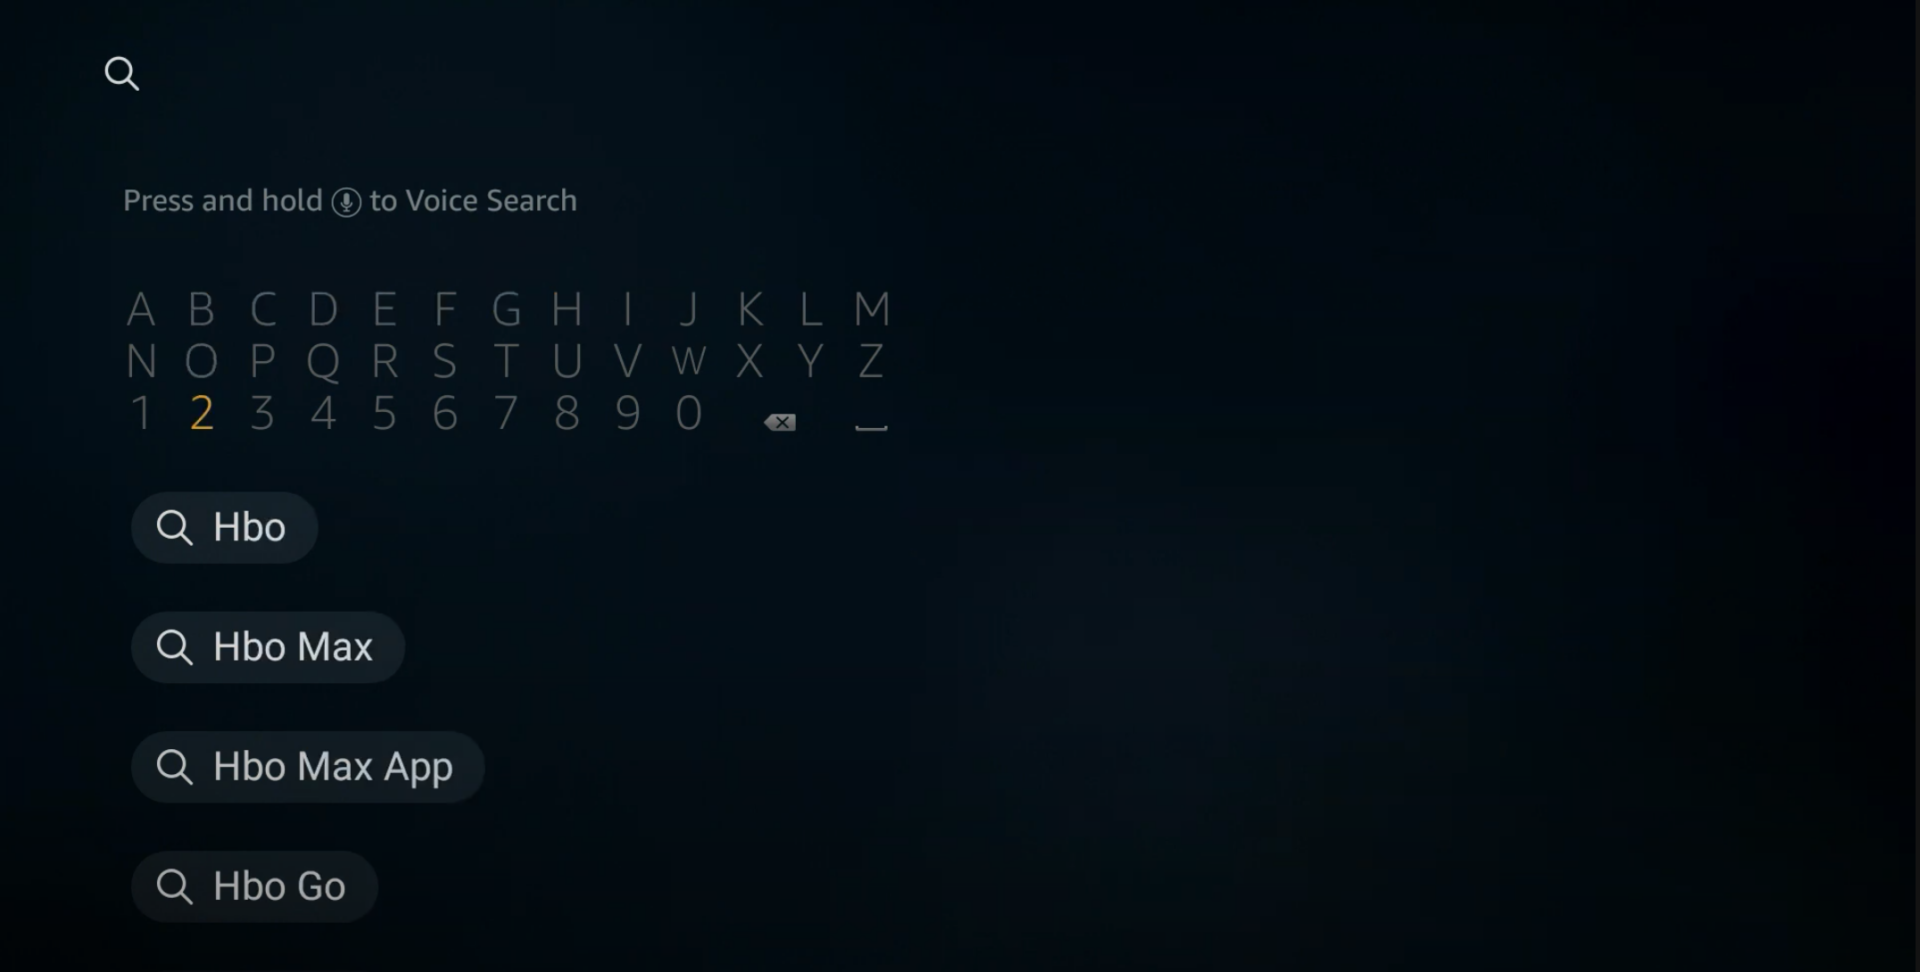 Using manual search for HBO Max